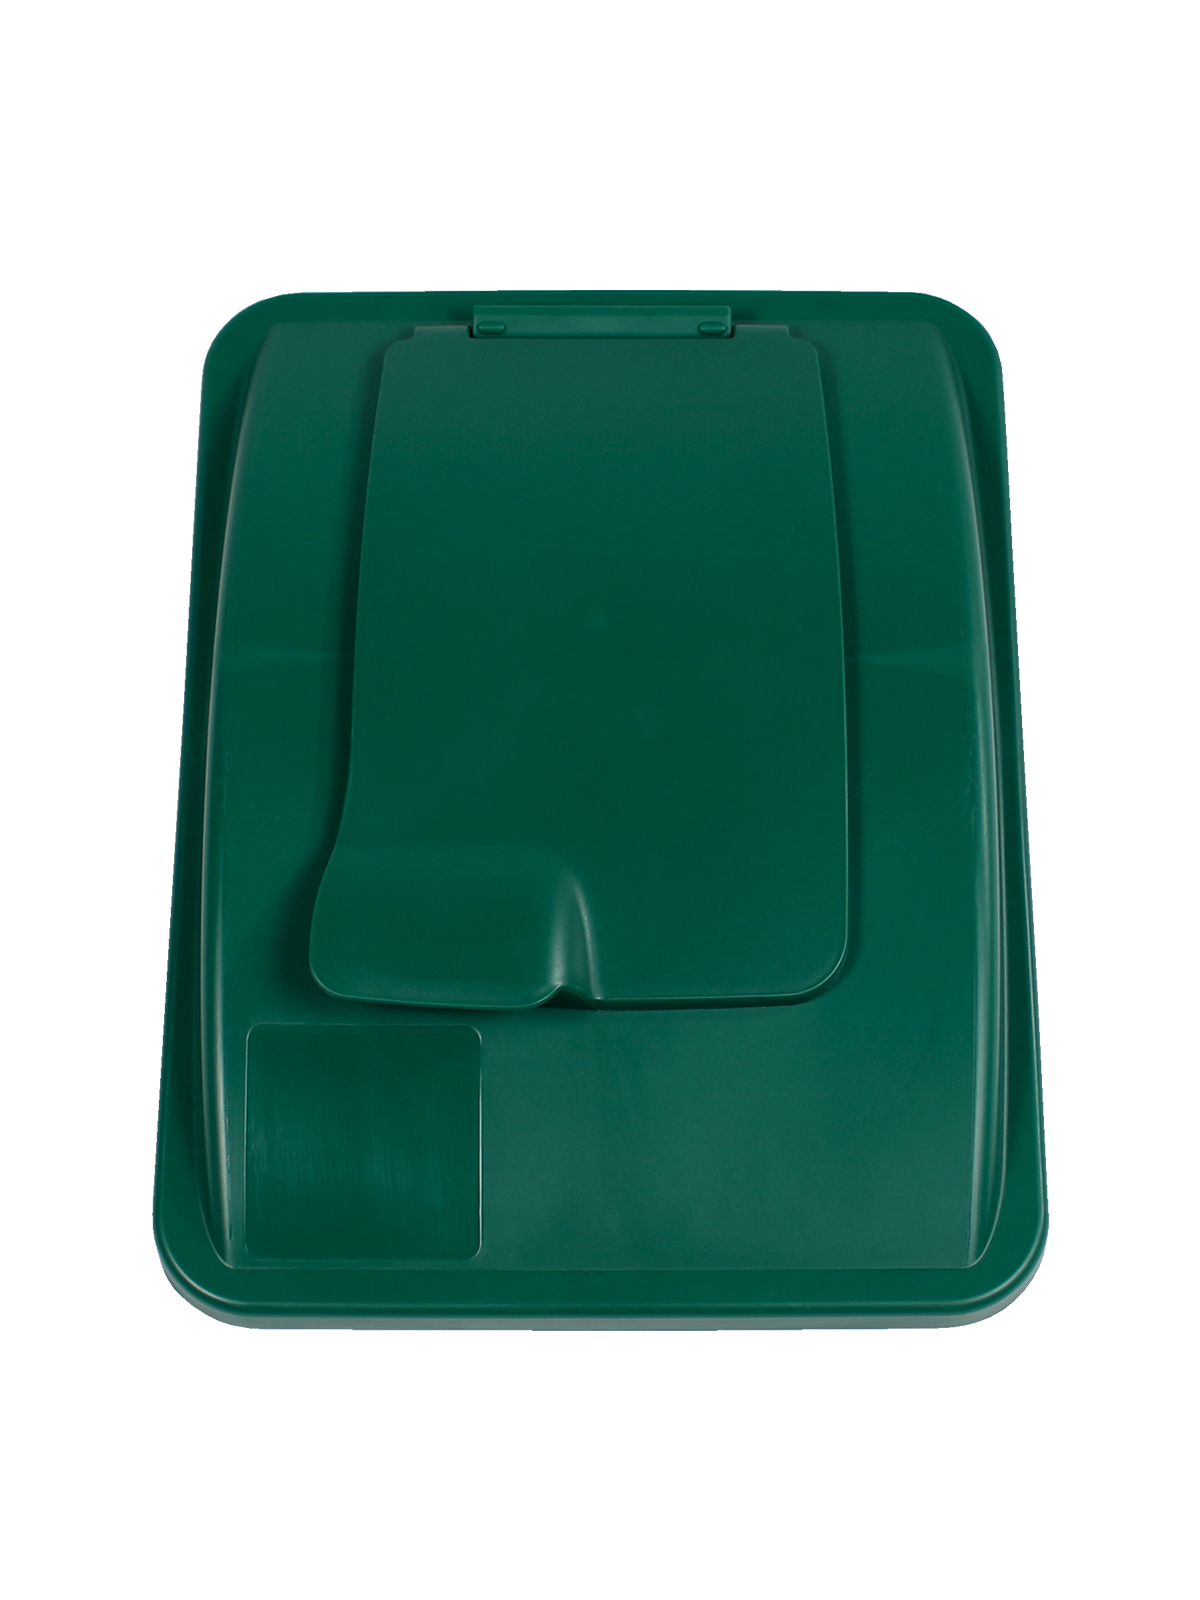 WASTE WATCHER XL - Lid - Solid Lift - Dark Green